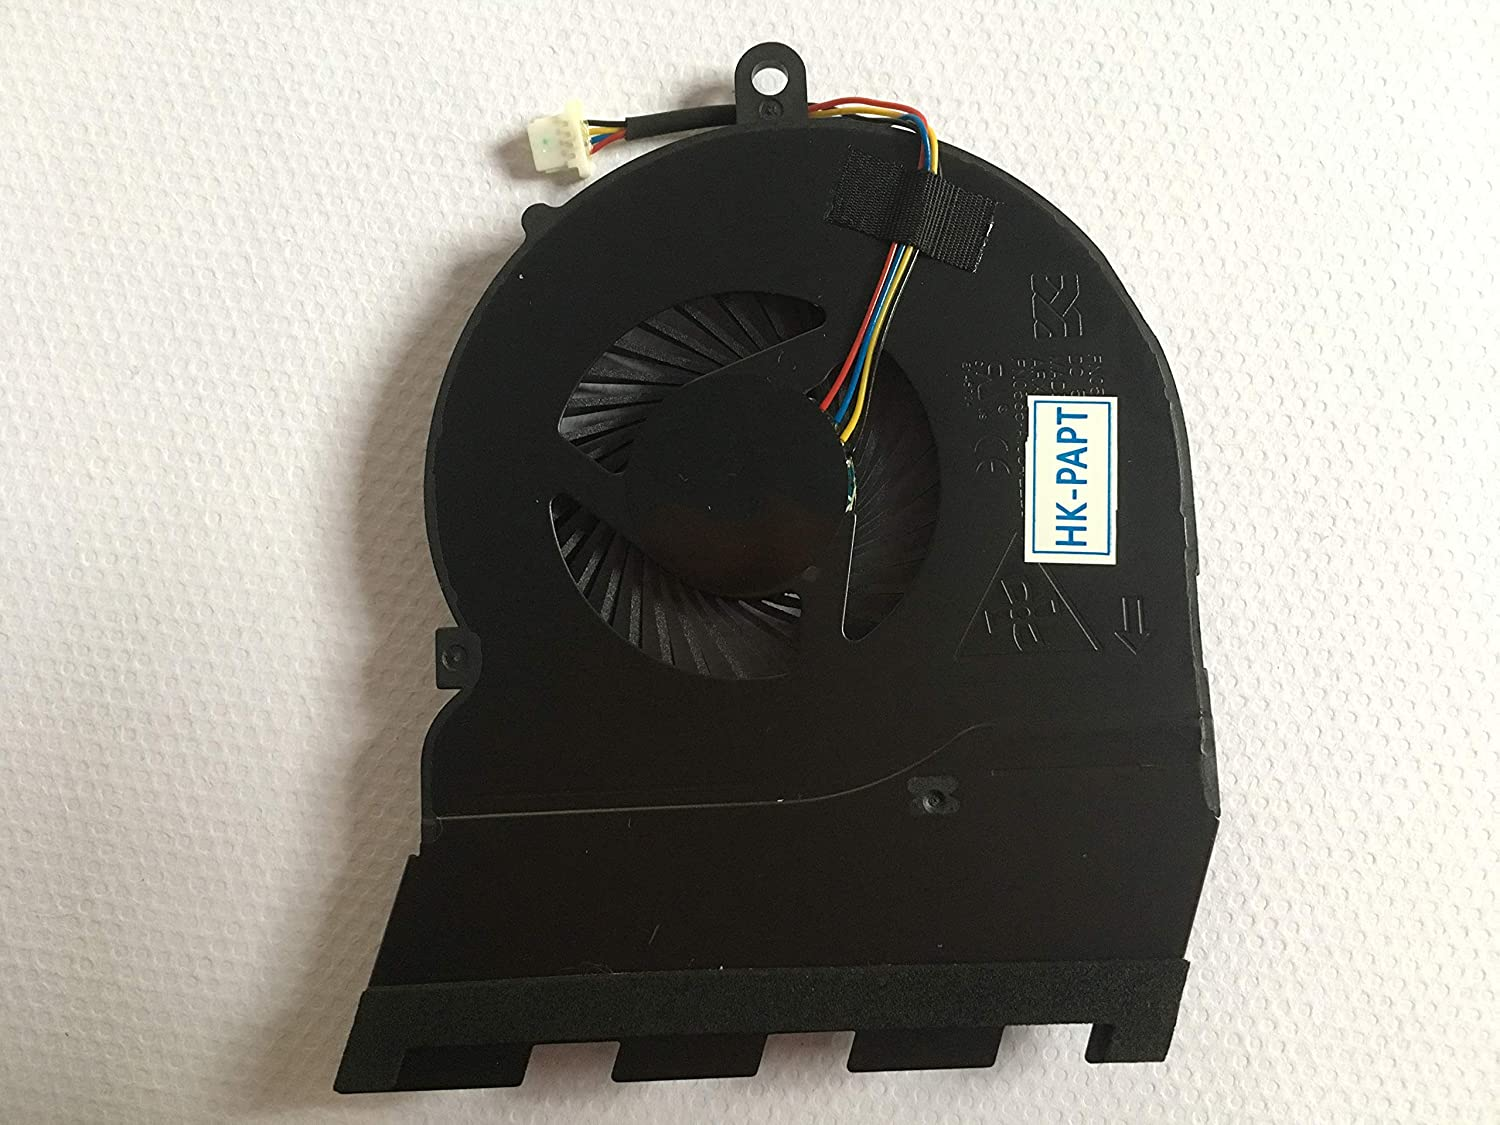 HK-Part Replacement for Dell Inspiron 15-5565 15-5567 17-5767 CPU Cooling Fan DP//N CN-0789DY 4-pins Connector